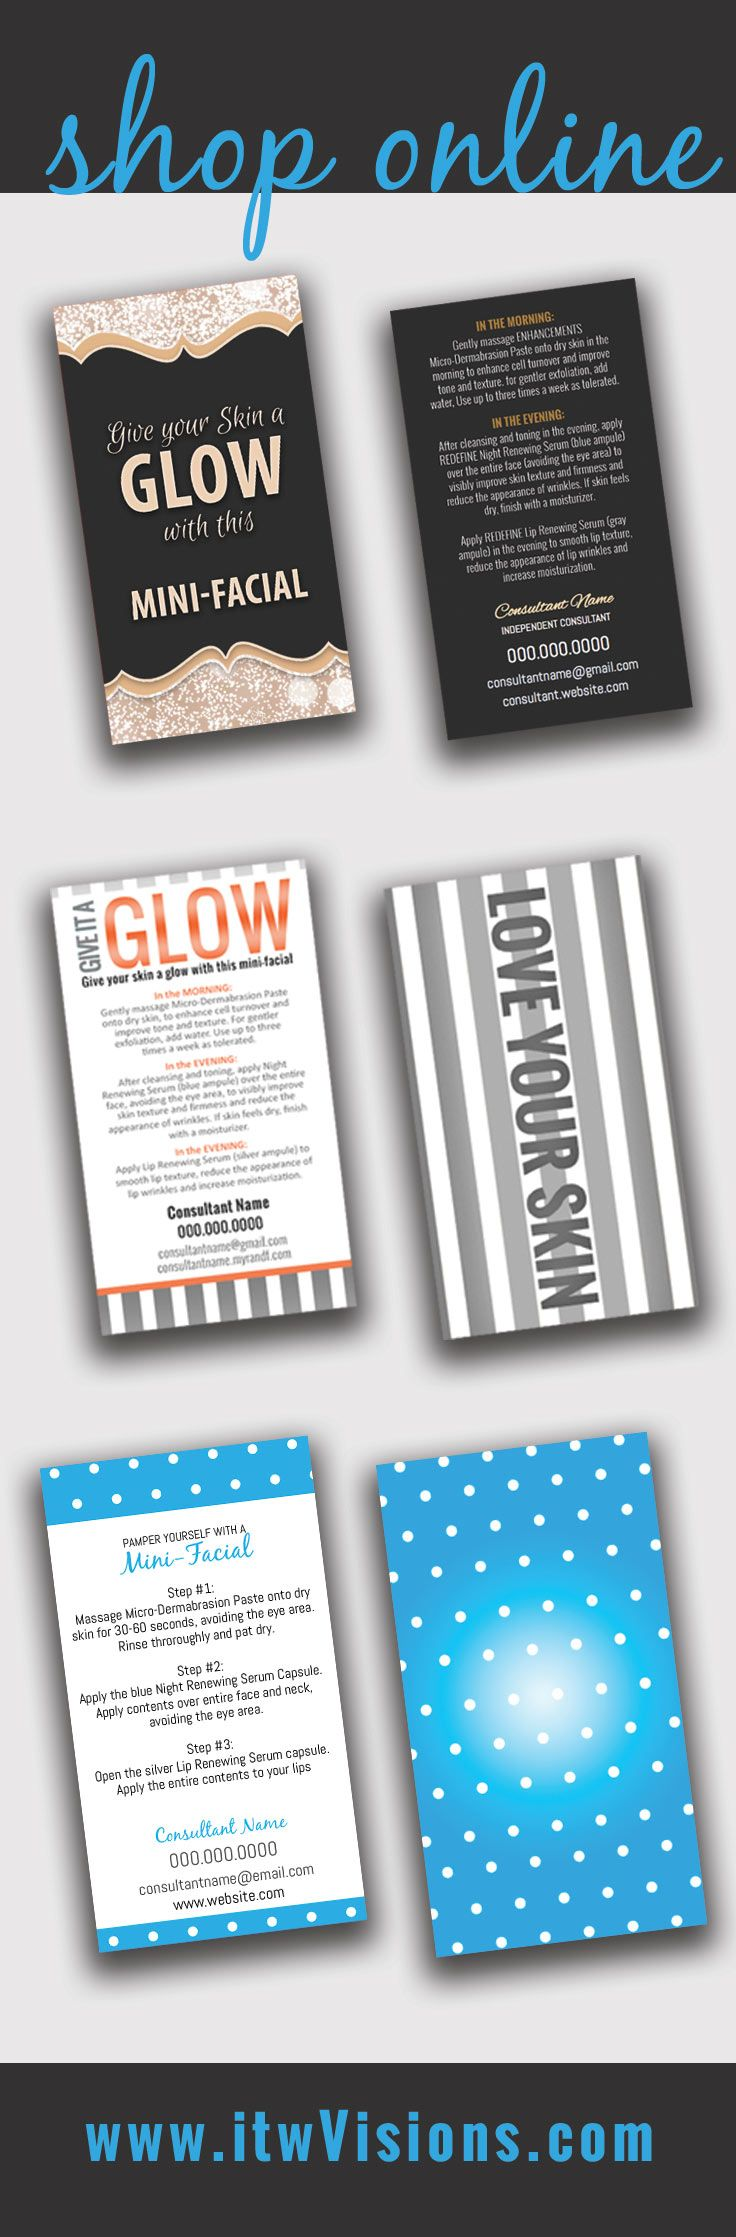 Make your own mini-facial instruction cards at itwvisions.com. Many designs and styles to choose from...give it a glow and love your skin.